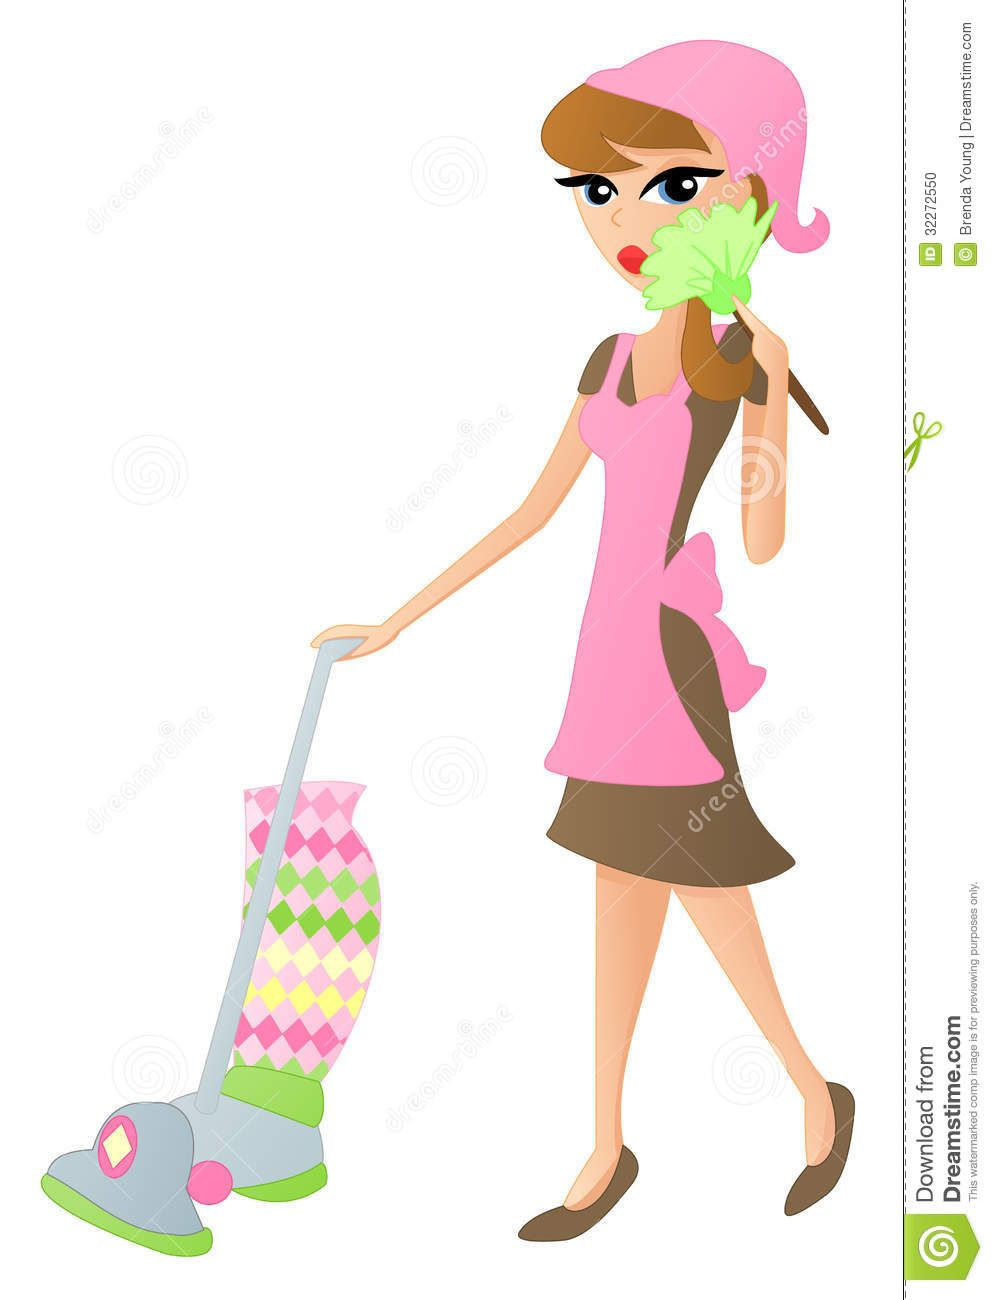 Housekeeping clipart cartoon. Free download cleaning lady